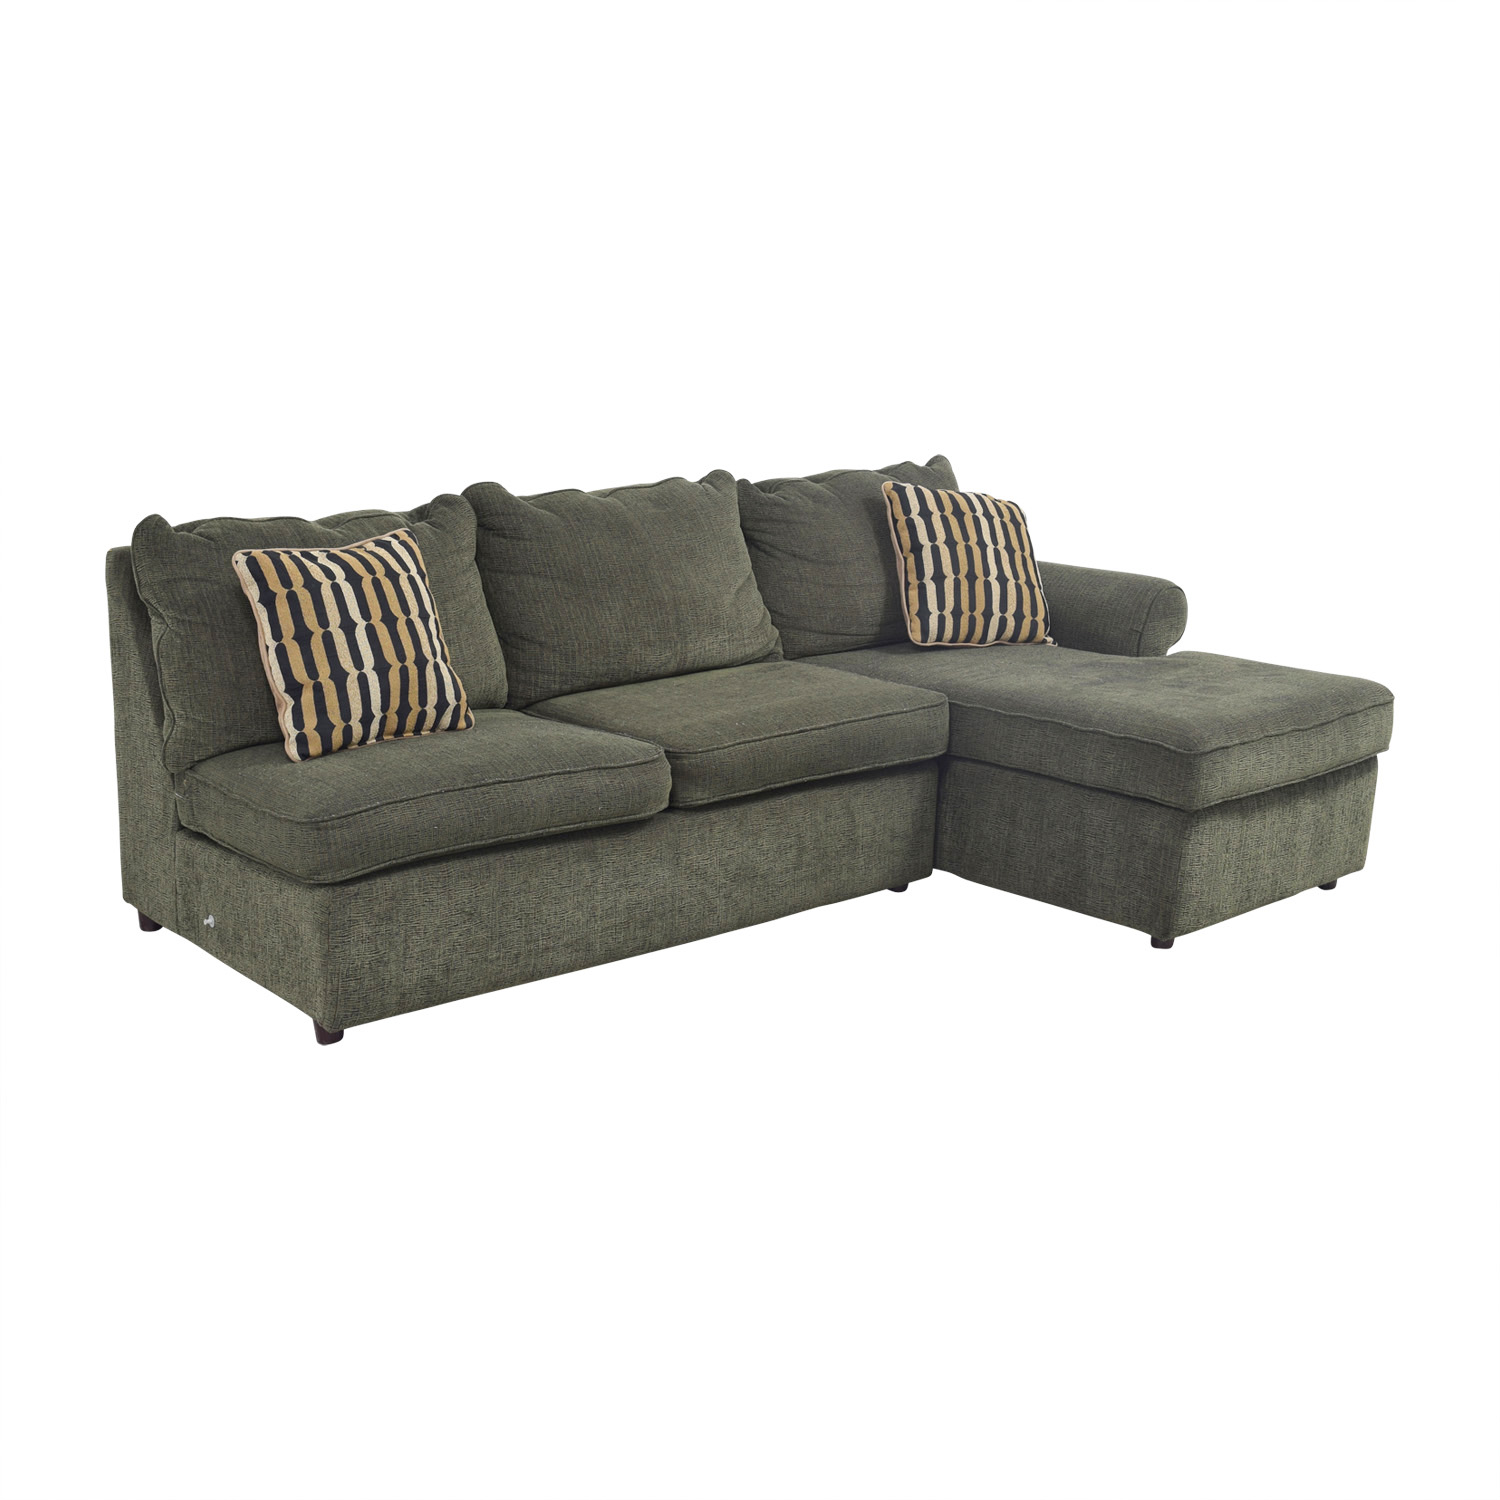 78 OFF LaZBoy LaZBoy Forest Green LShaped Sectional Couch